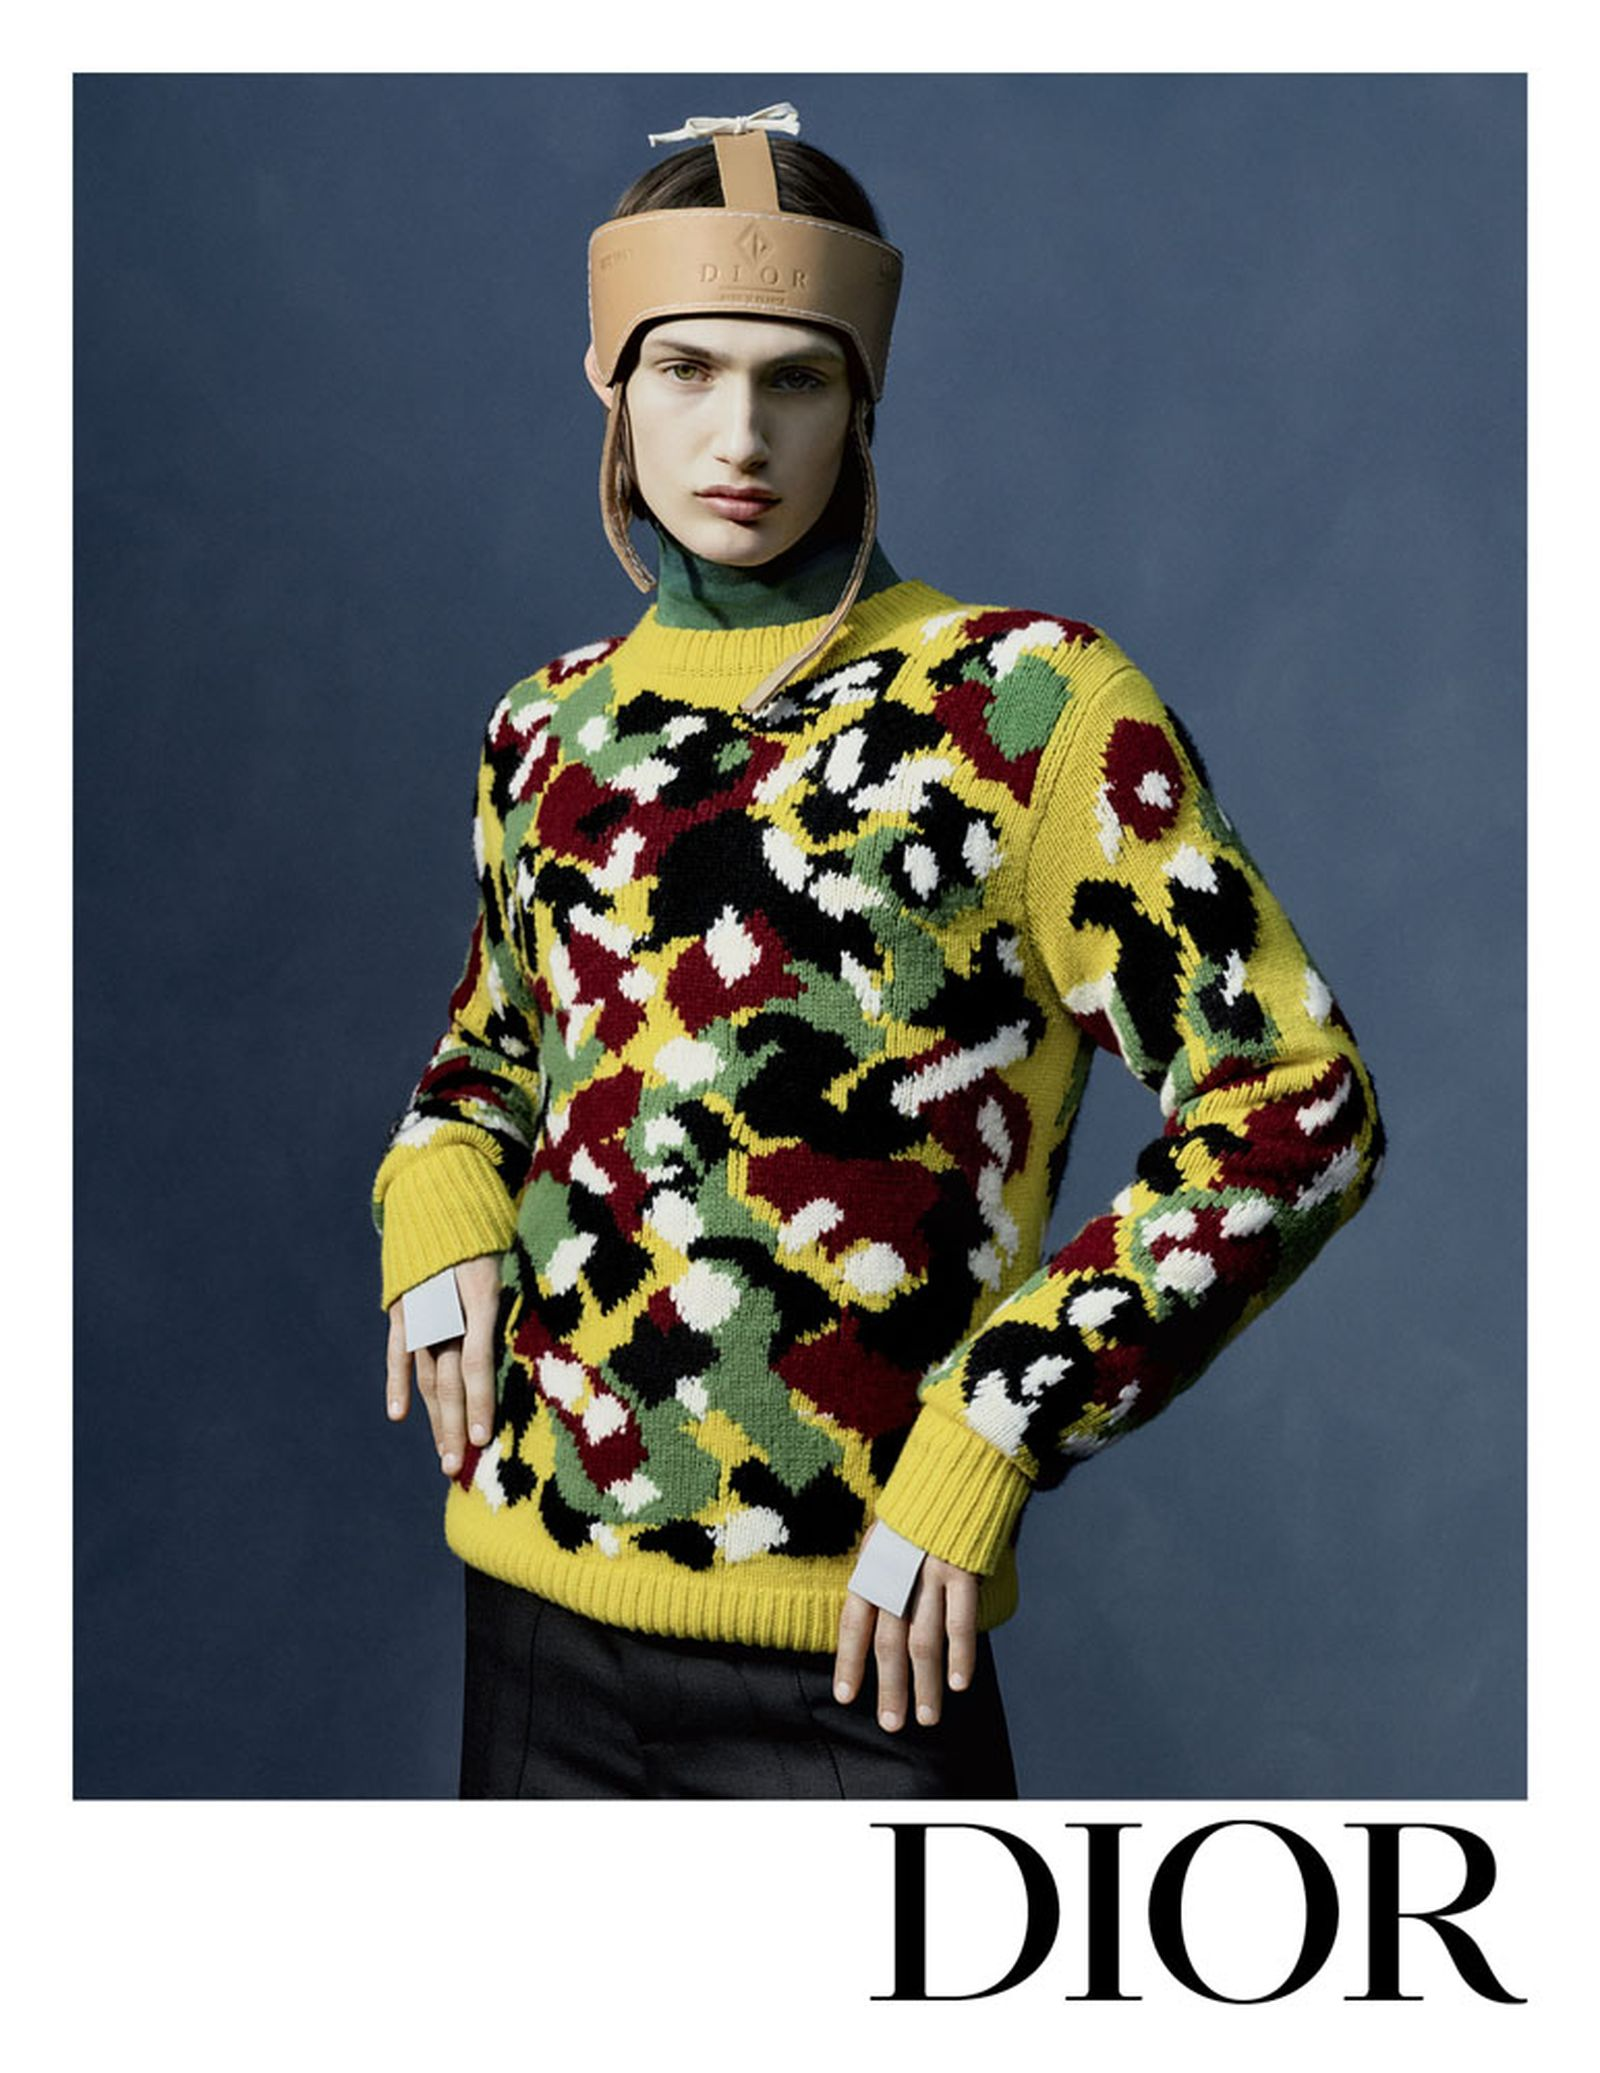 dior-mens-winter-2021-campain-peter-doig-collaboration-04